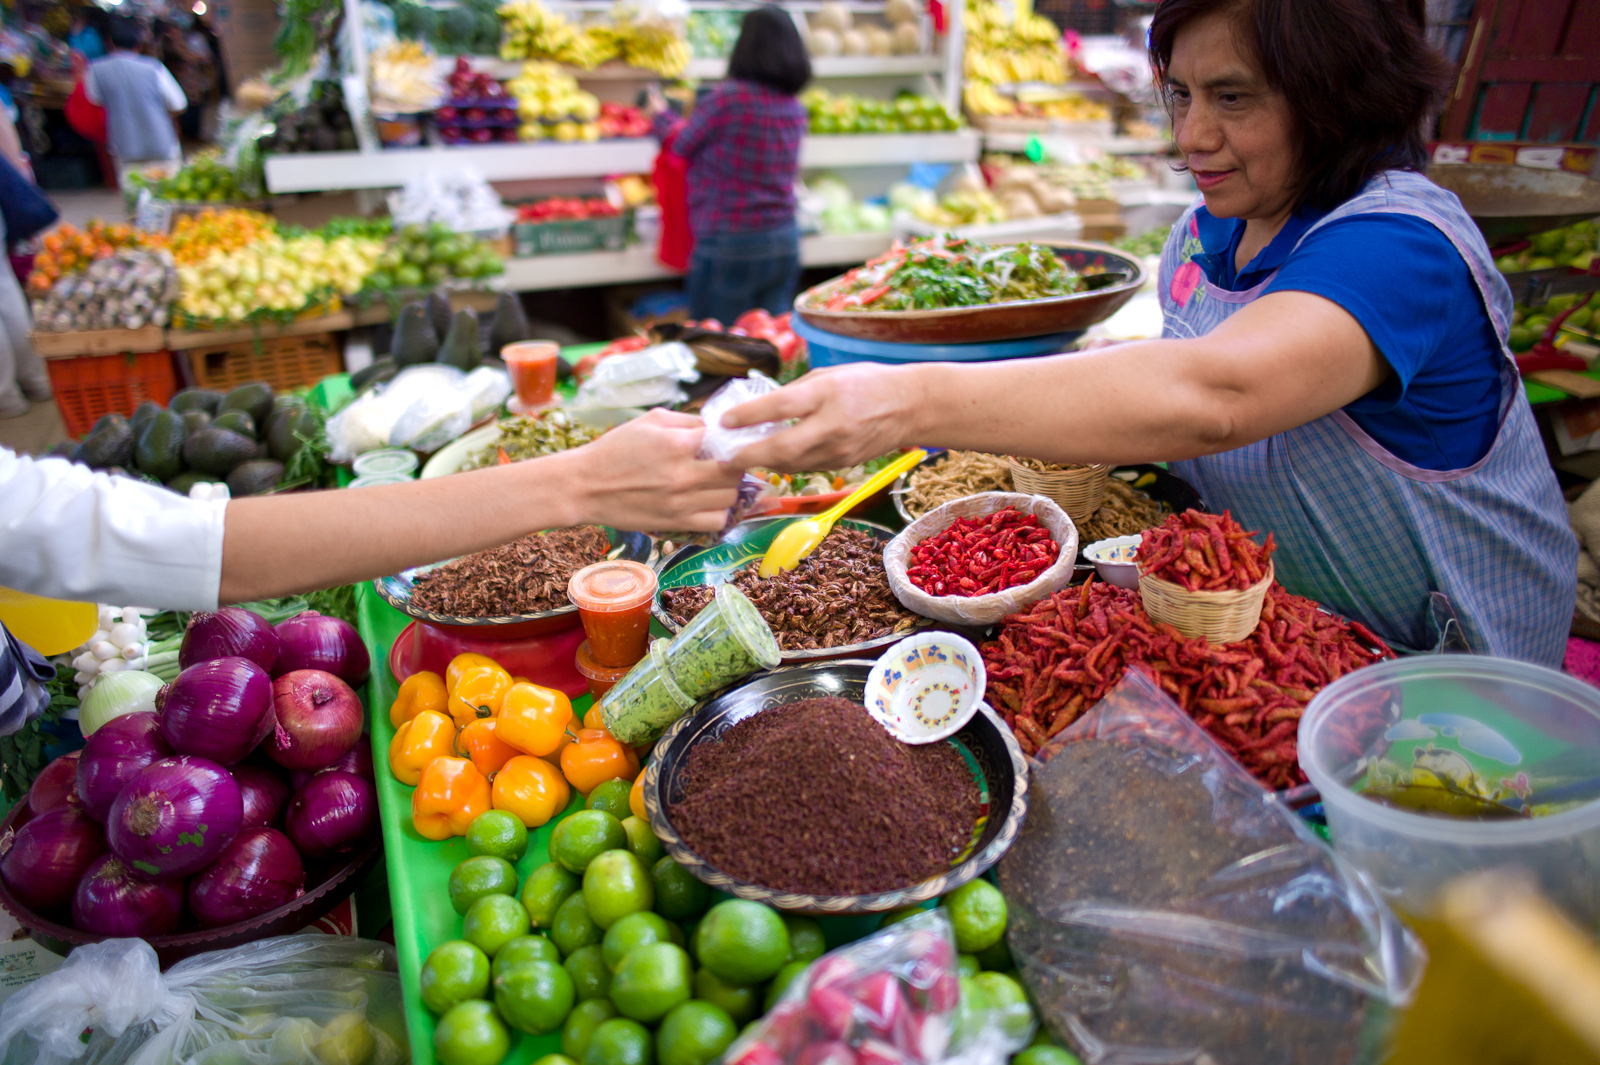 Buying chapulines (grasshoppers)